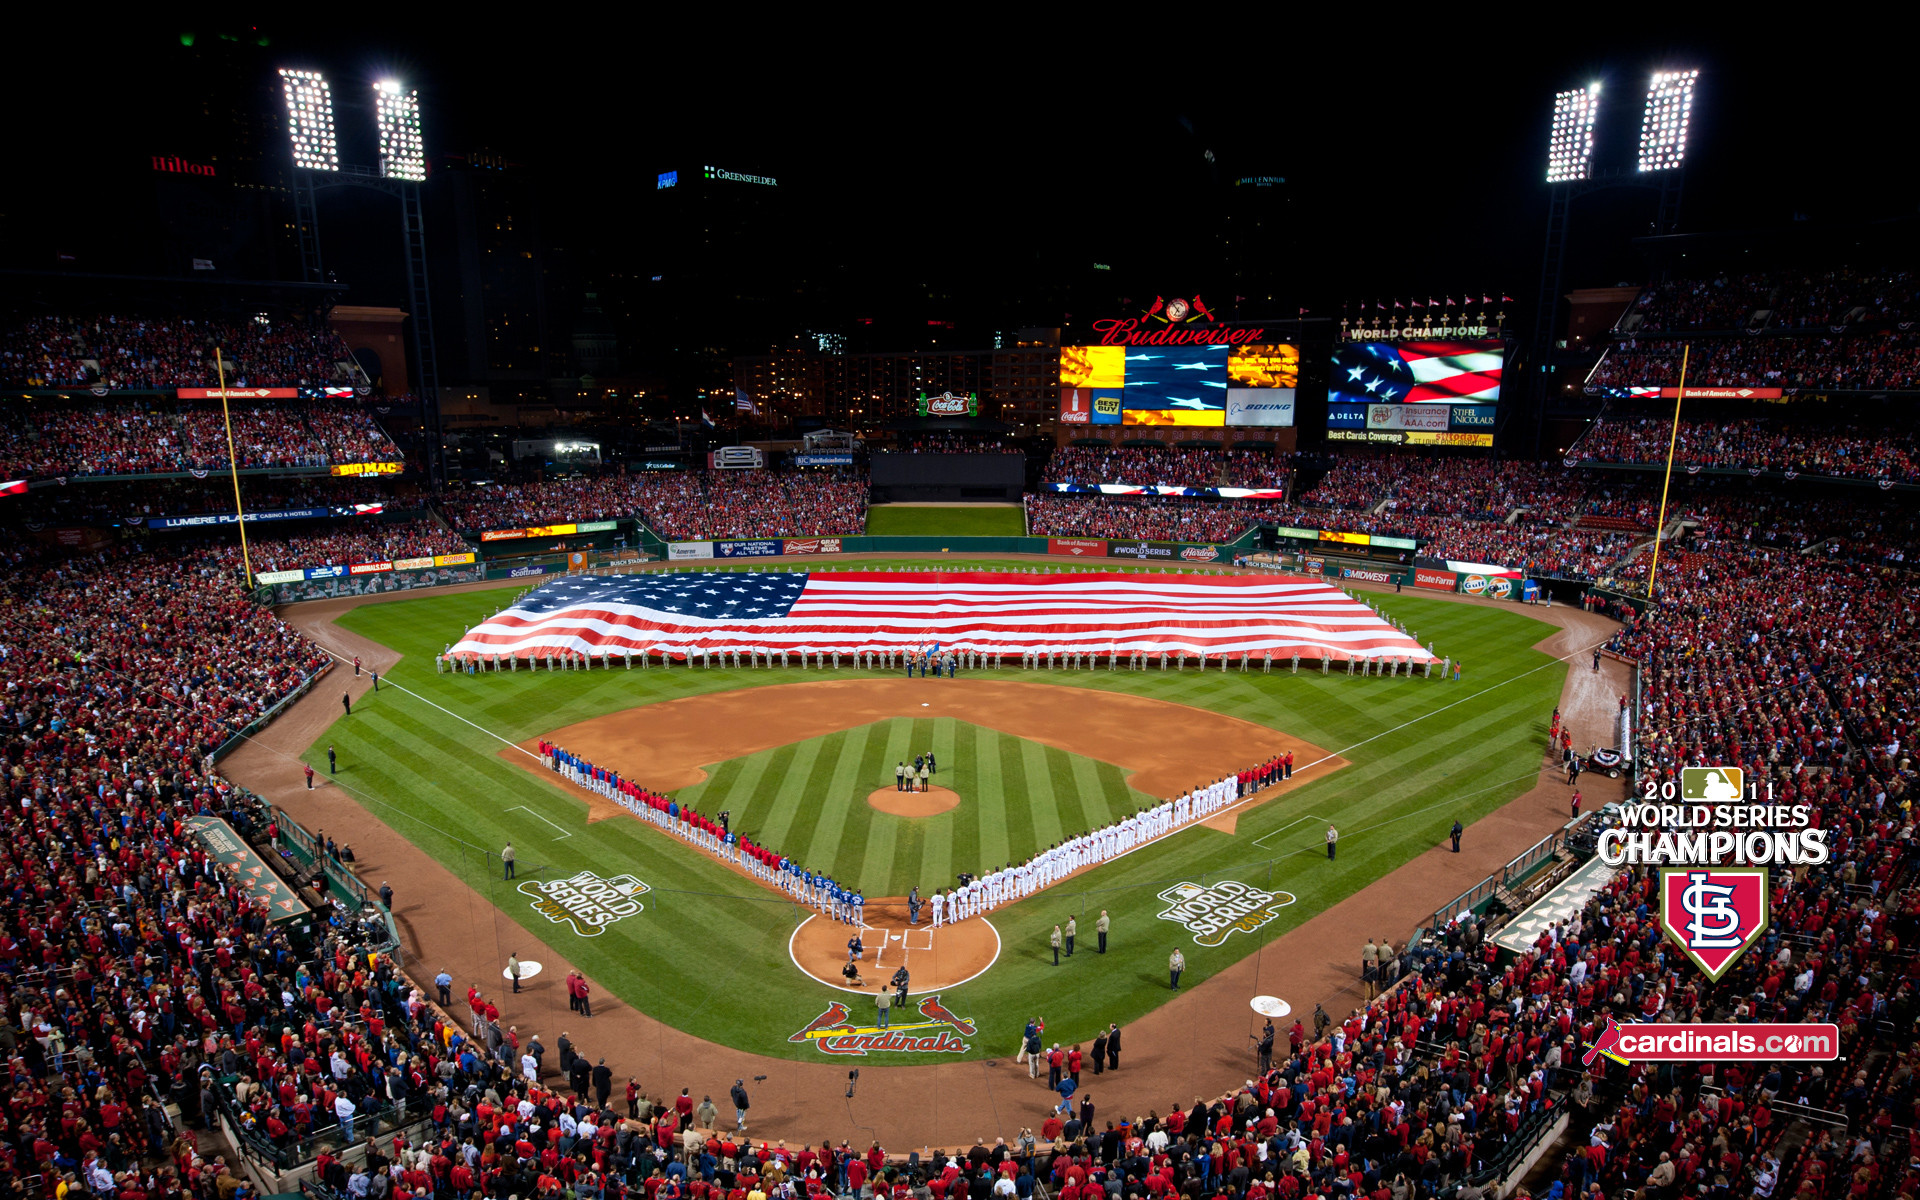 1920x1200 ST_ LOUIS CARDINALS baseball mlb dw wallpaper |  | 159478 |  WallpaperUP